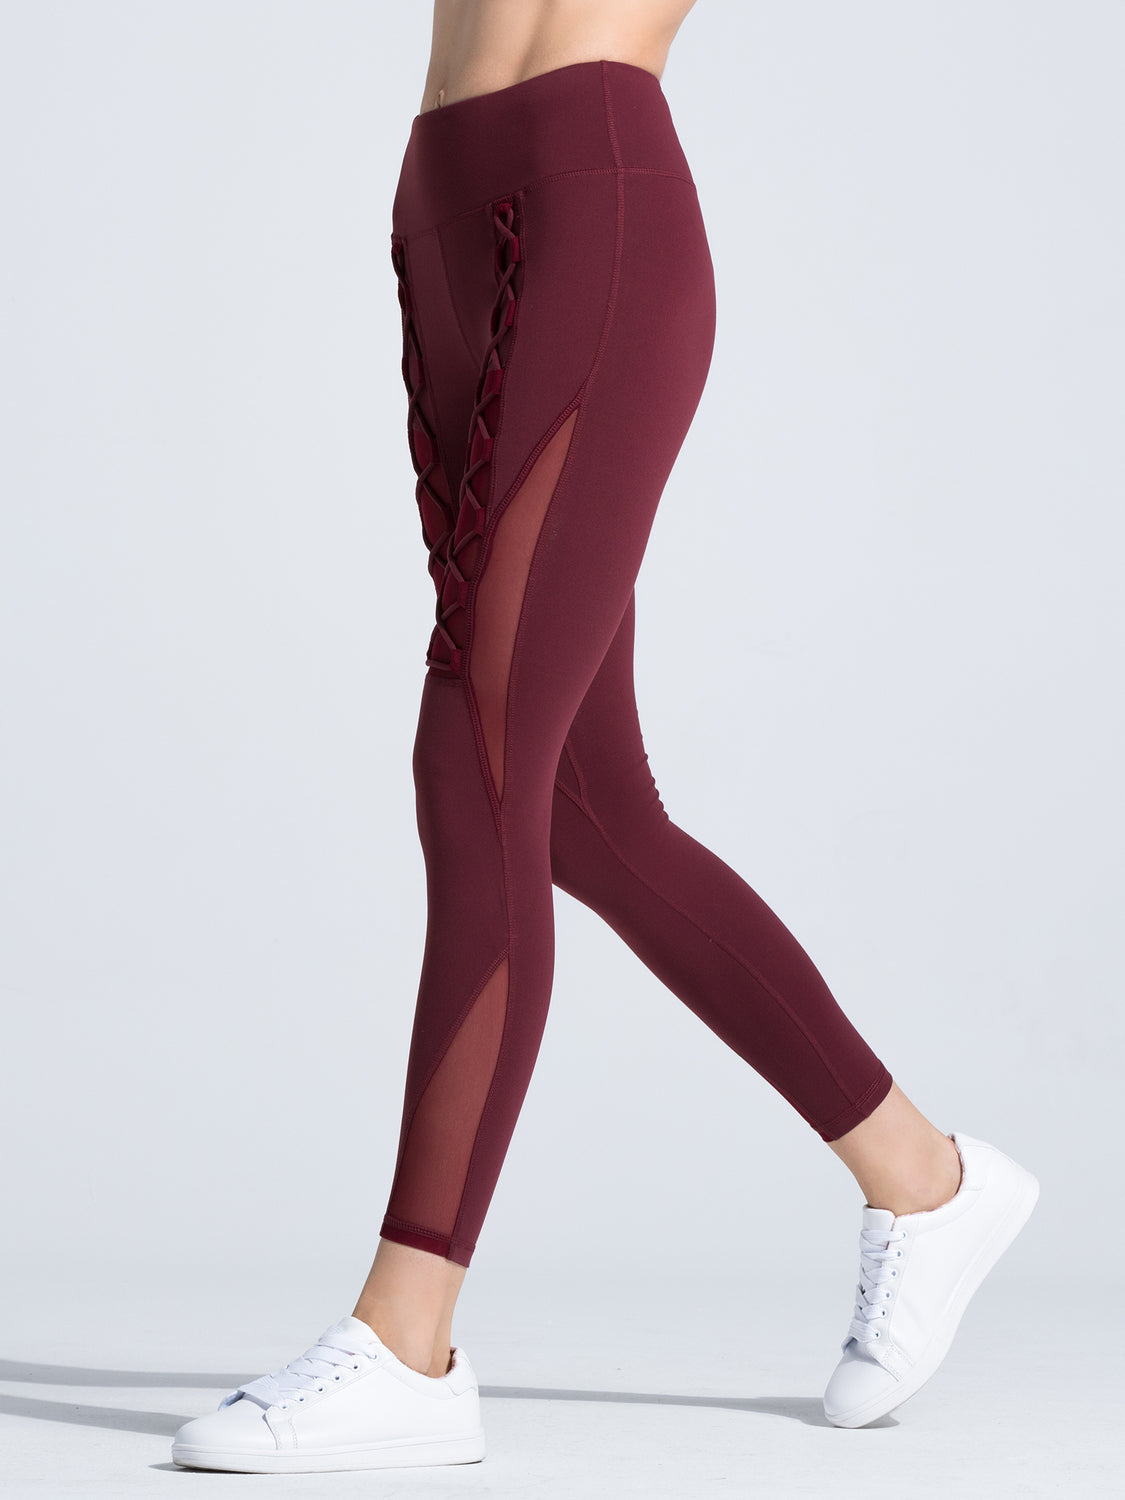 VORTEX PANTS, BORDEAUX/BORDEAUX MESH